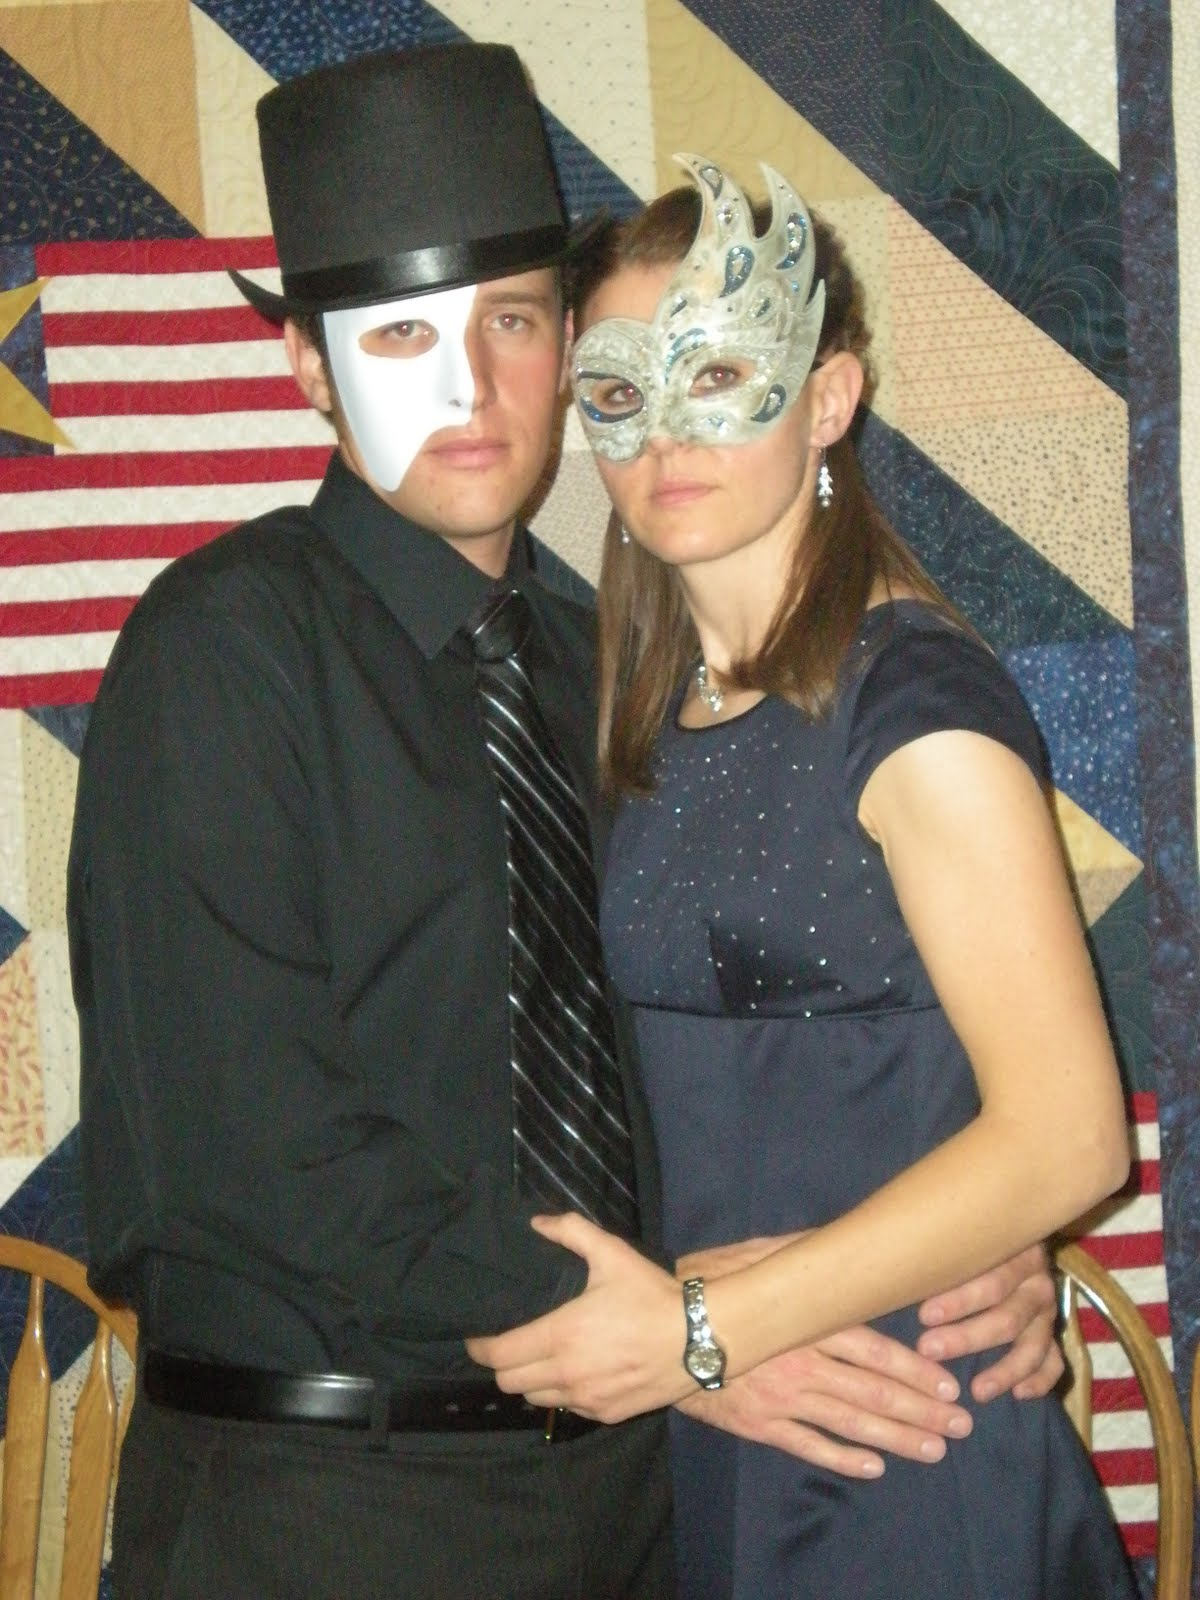 Dress up for masquerade party - We All Were Able To Dress Up In Our Best Wear Masks And Dance Like Crazy I Was Working A Flight Down To New Orleans The Day Before The Party And Was